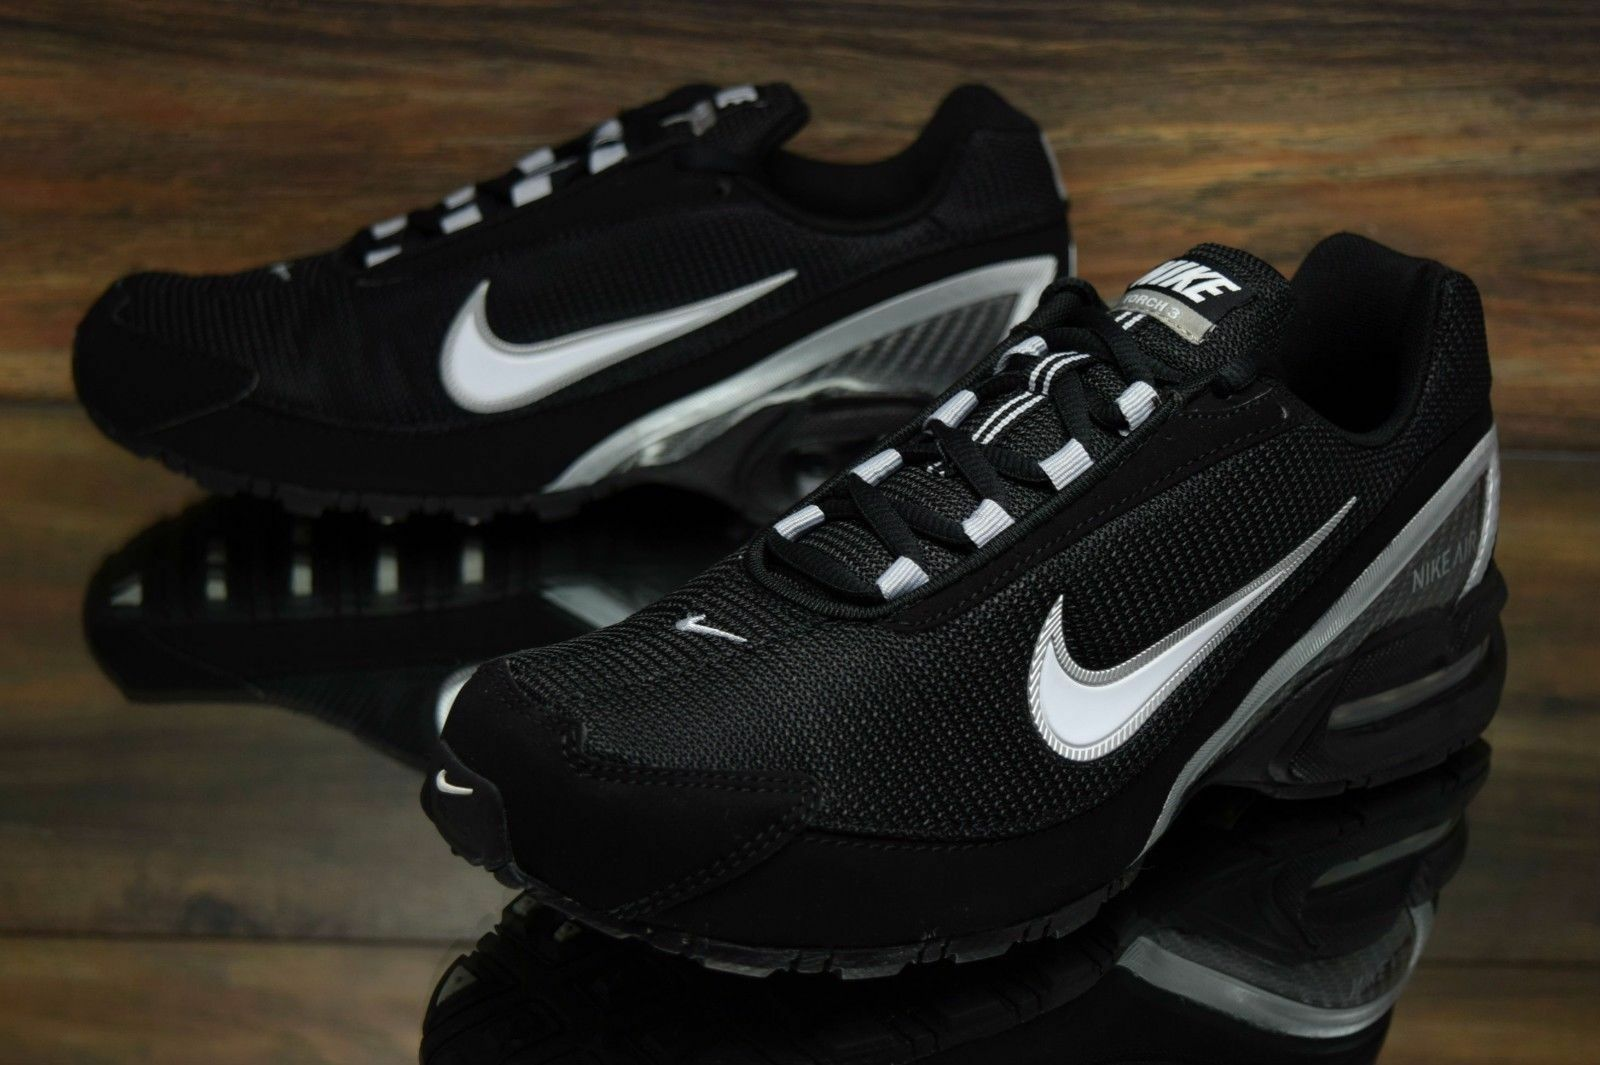 cb654aae69ad Nike Air Max Torch 3 Black White Running Shoes Sz 11.5 for sale ...